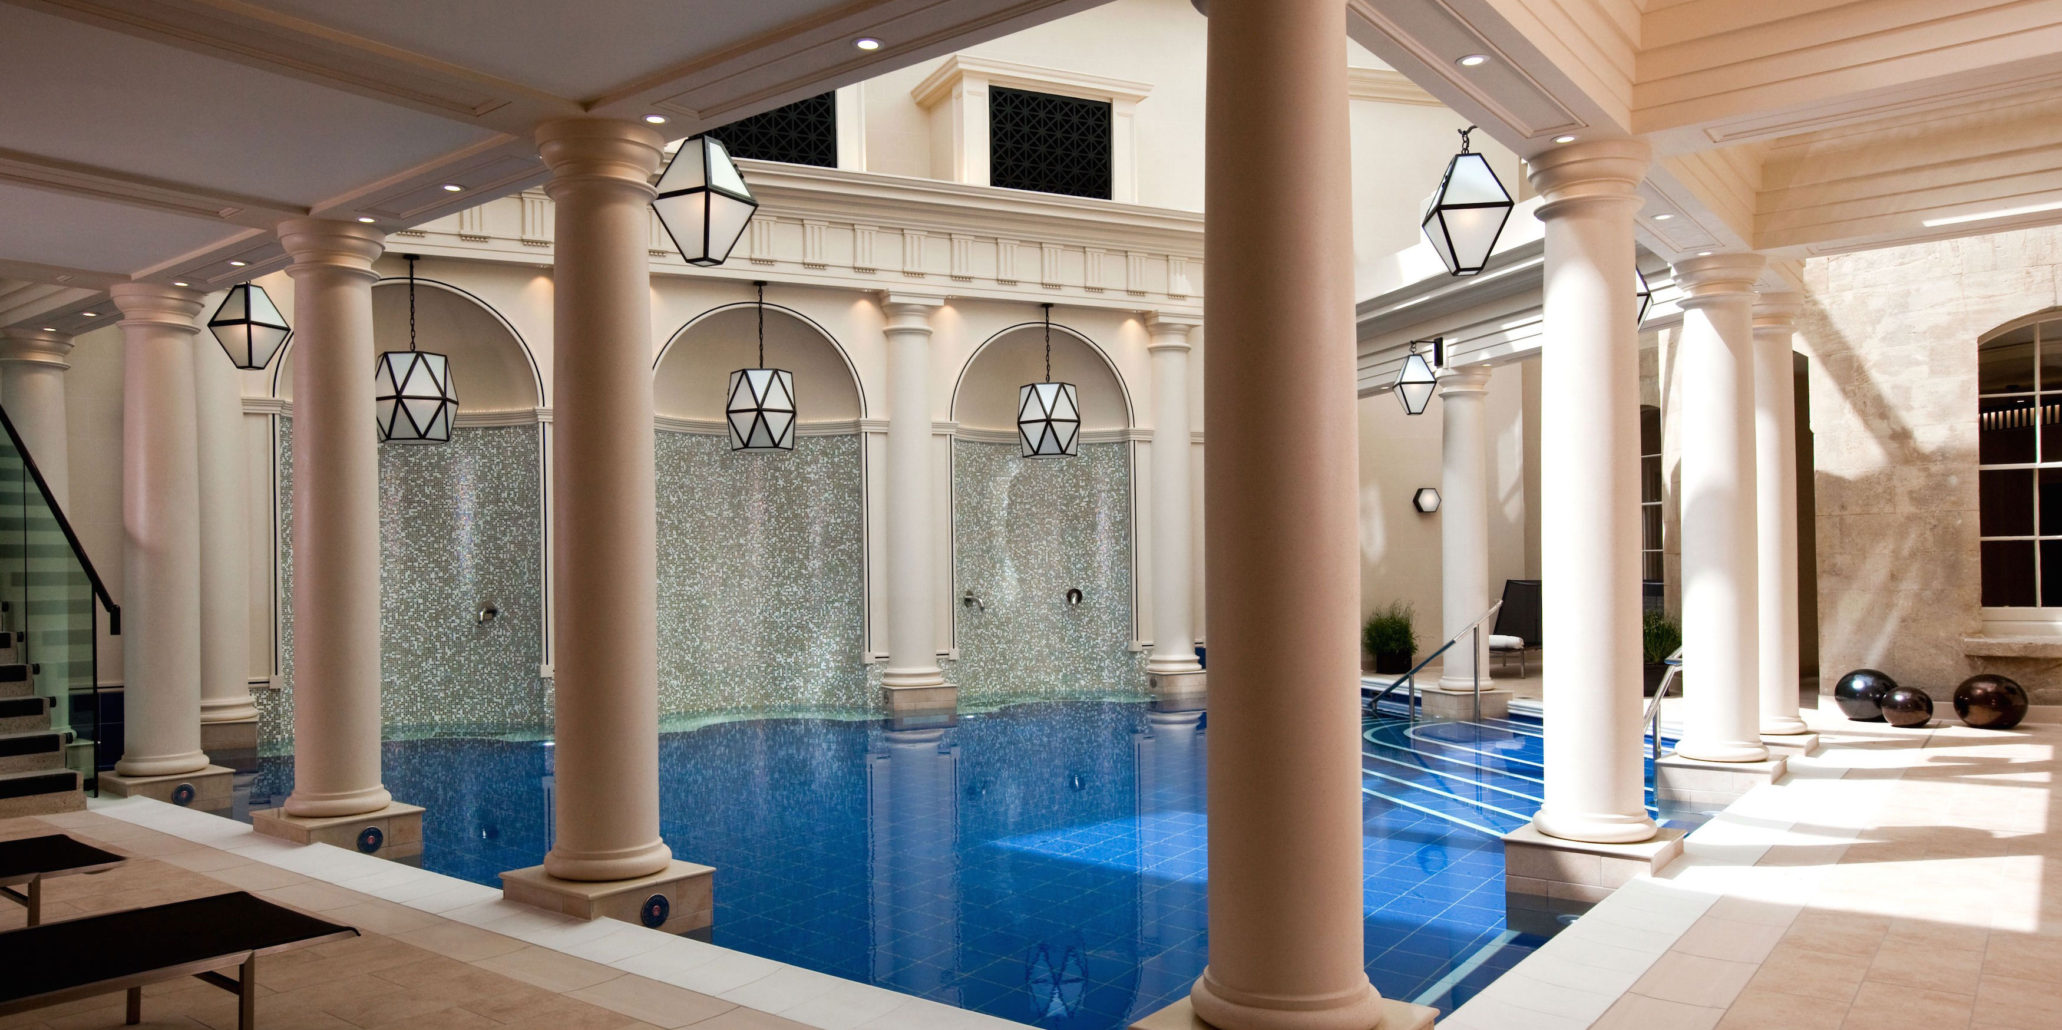 The Gainsborough Bath